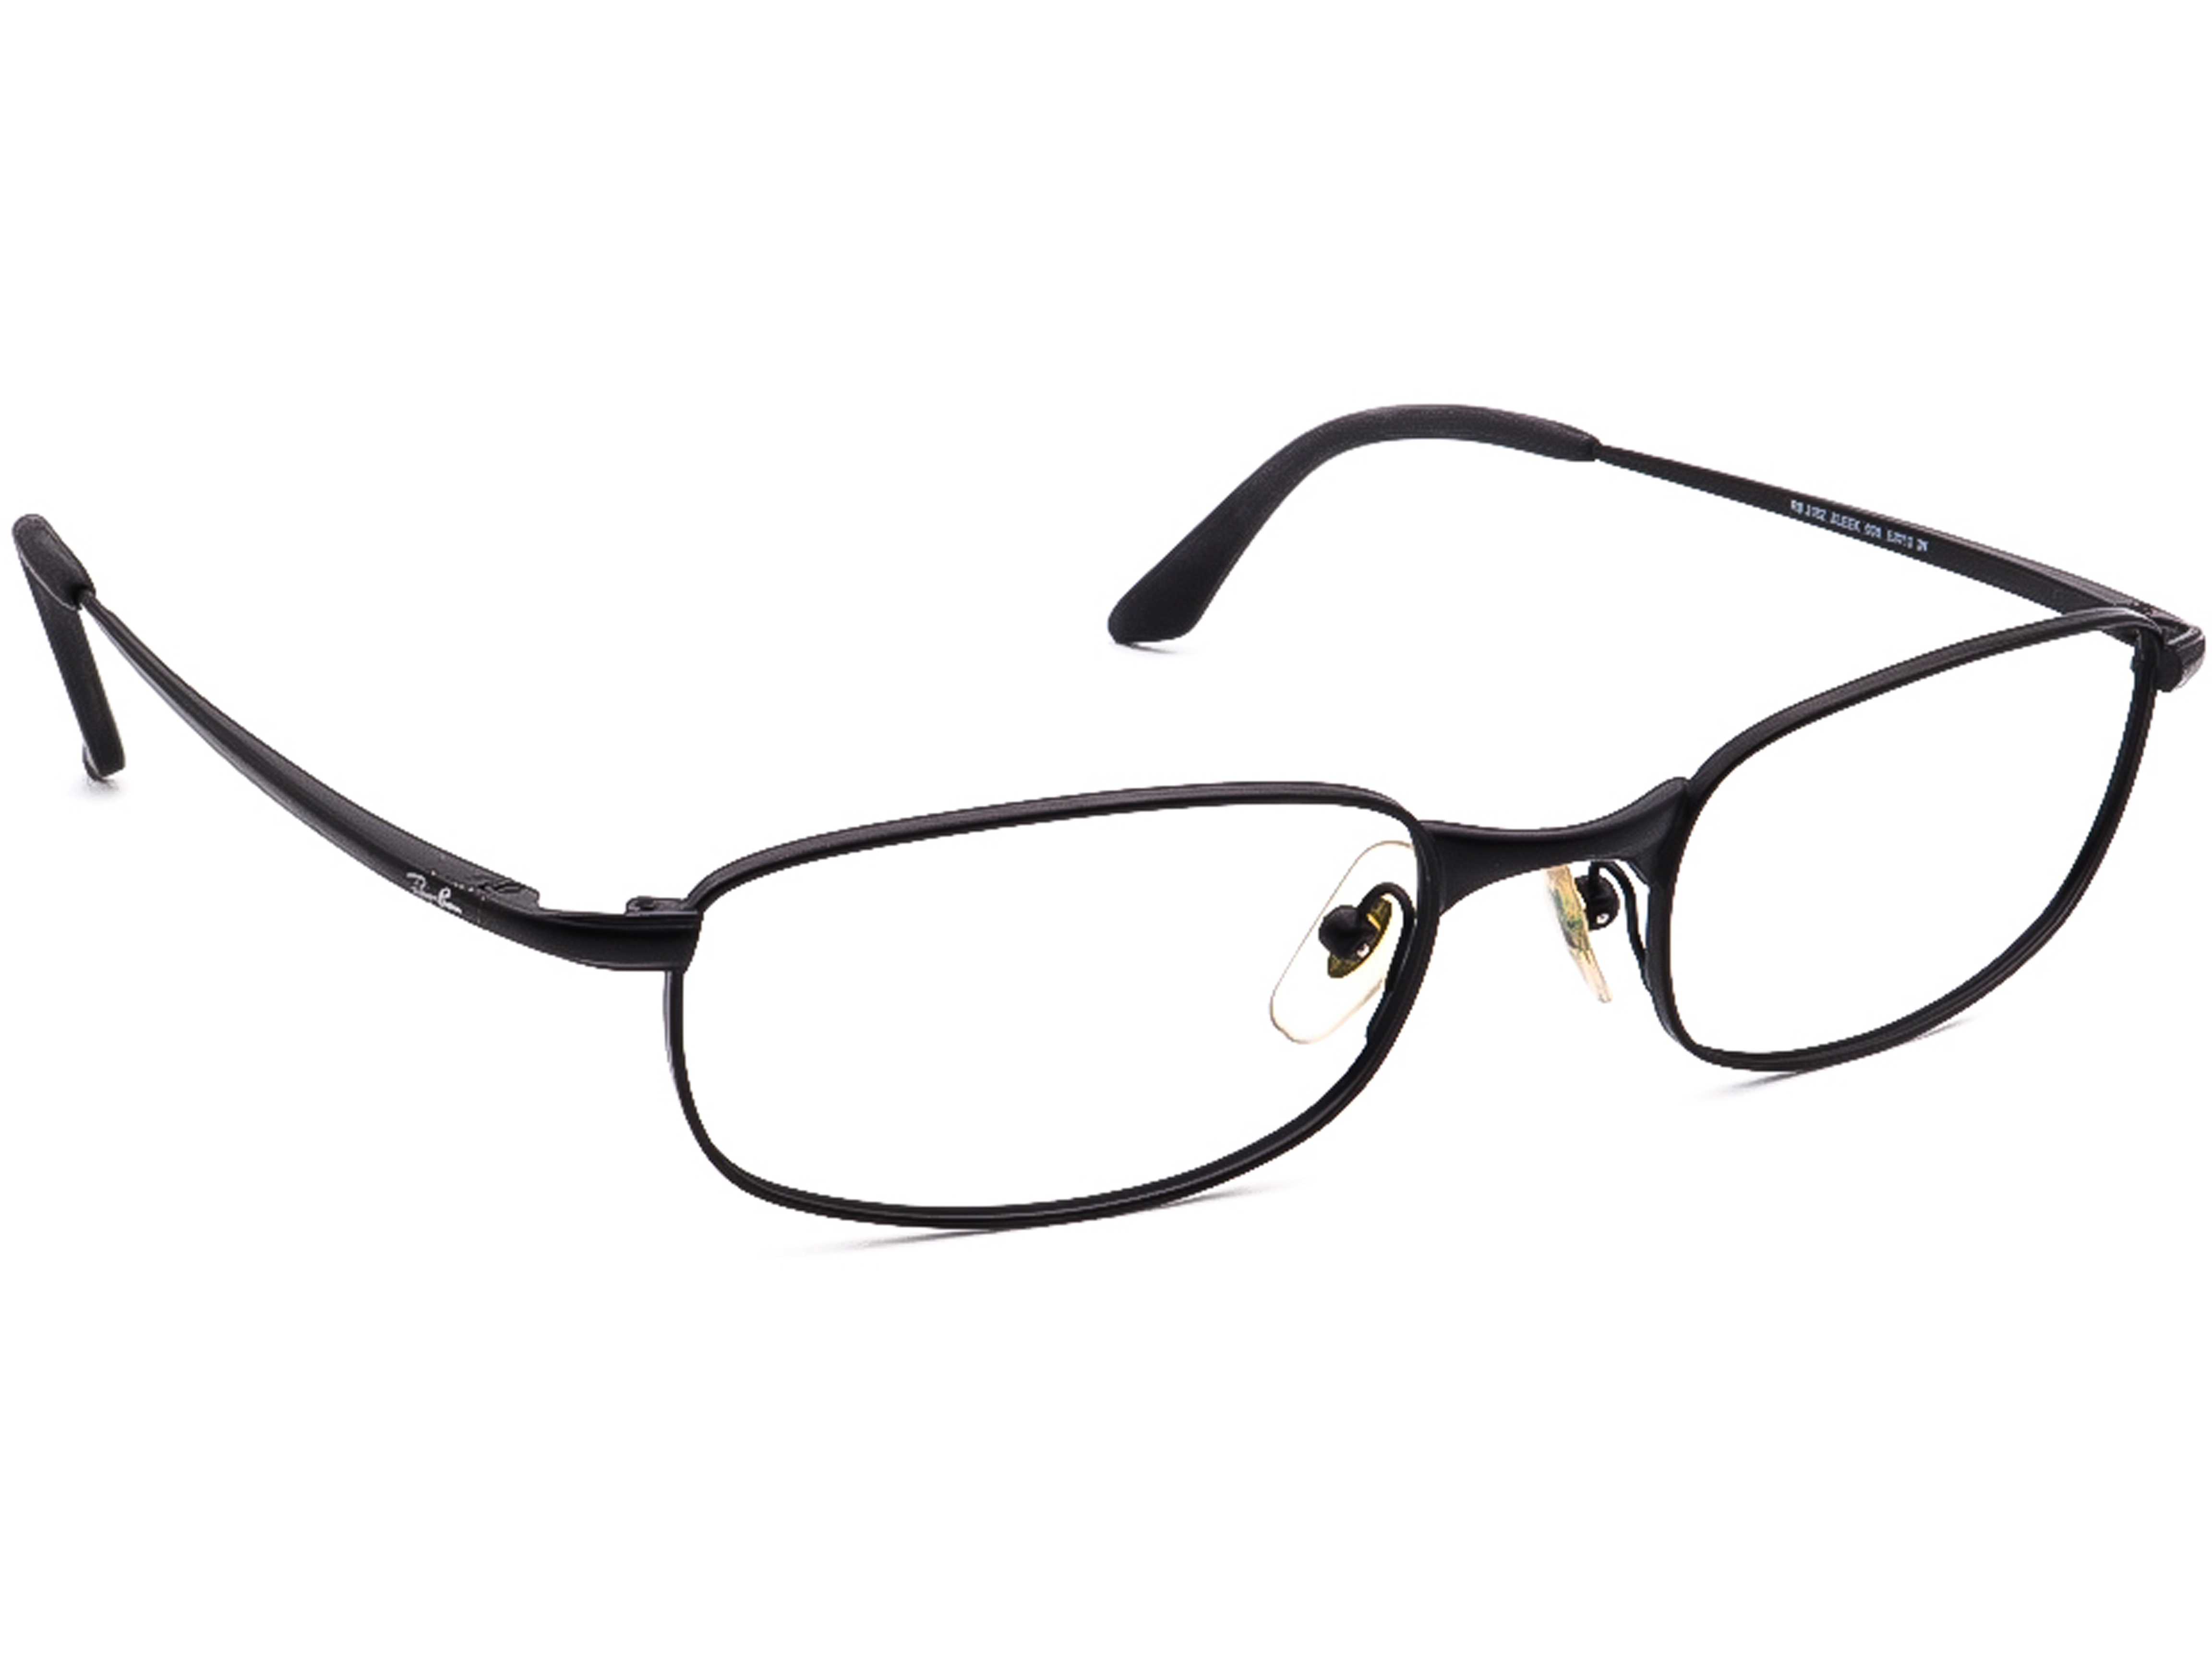 Ray Ban RB 3162 Sleek 006 Sunglasses Frame Only